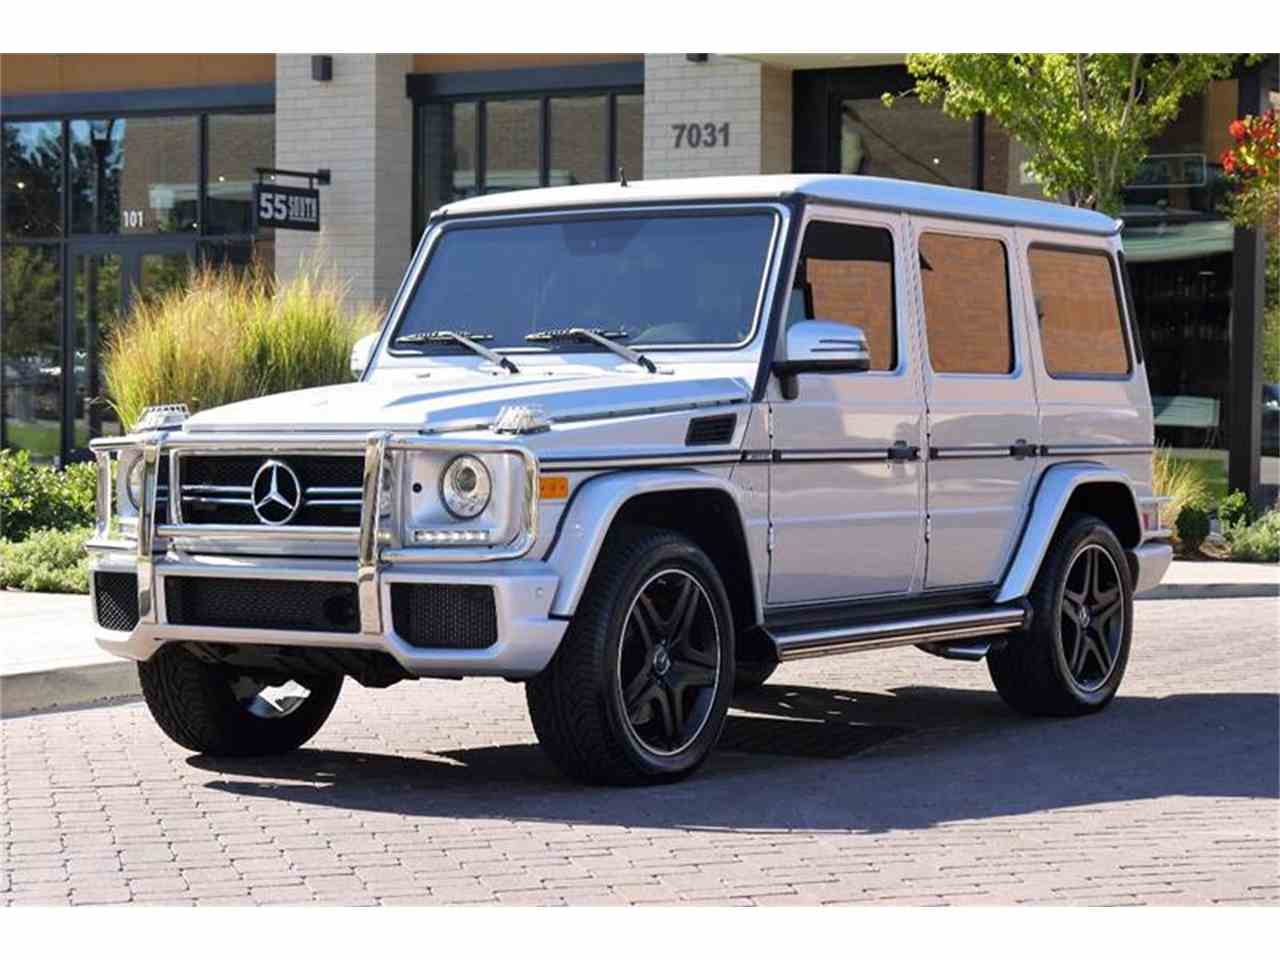 Large Picture of 2013 Mercedes-Benz G-Class Auction Vehicle Offered by Arde Motorcars - M2NF